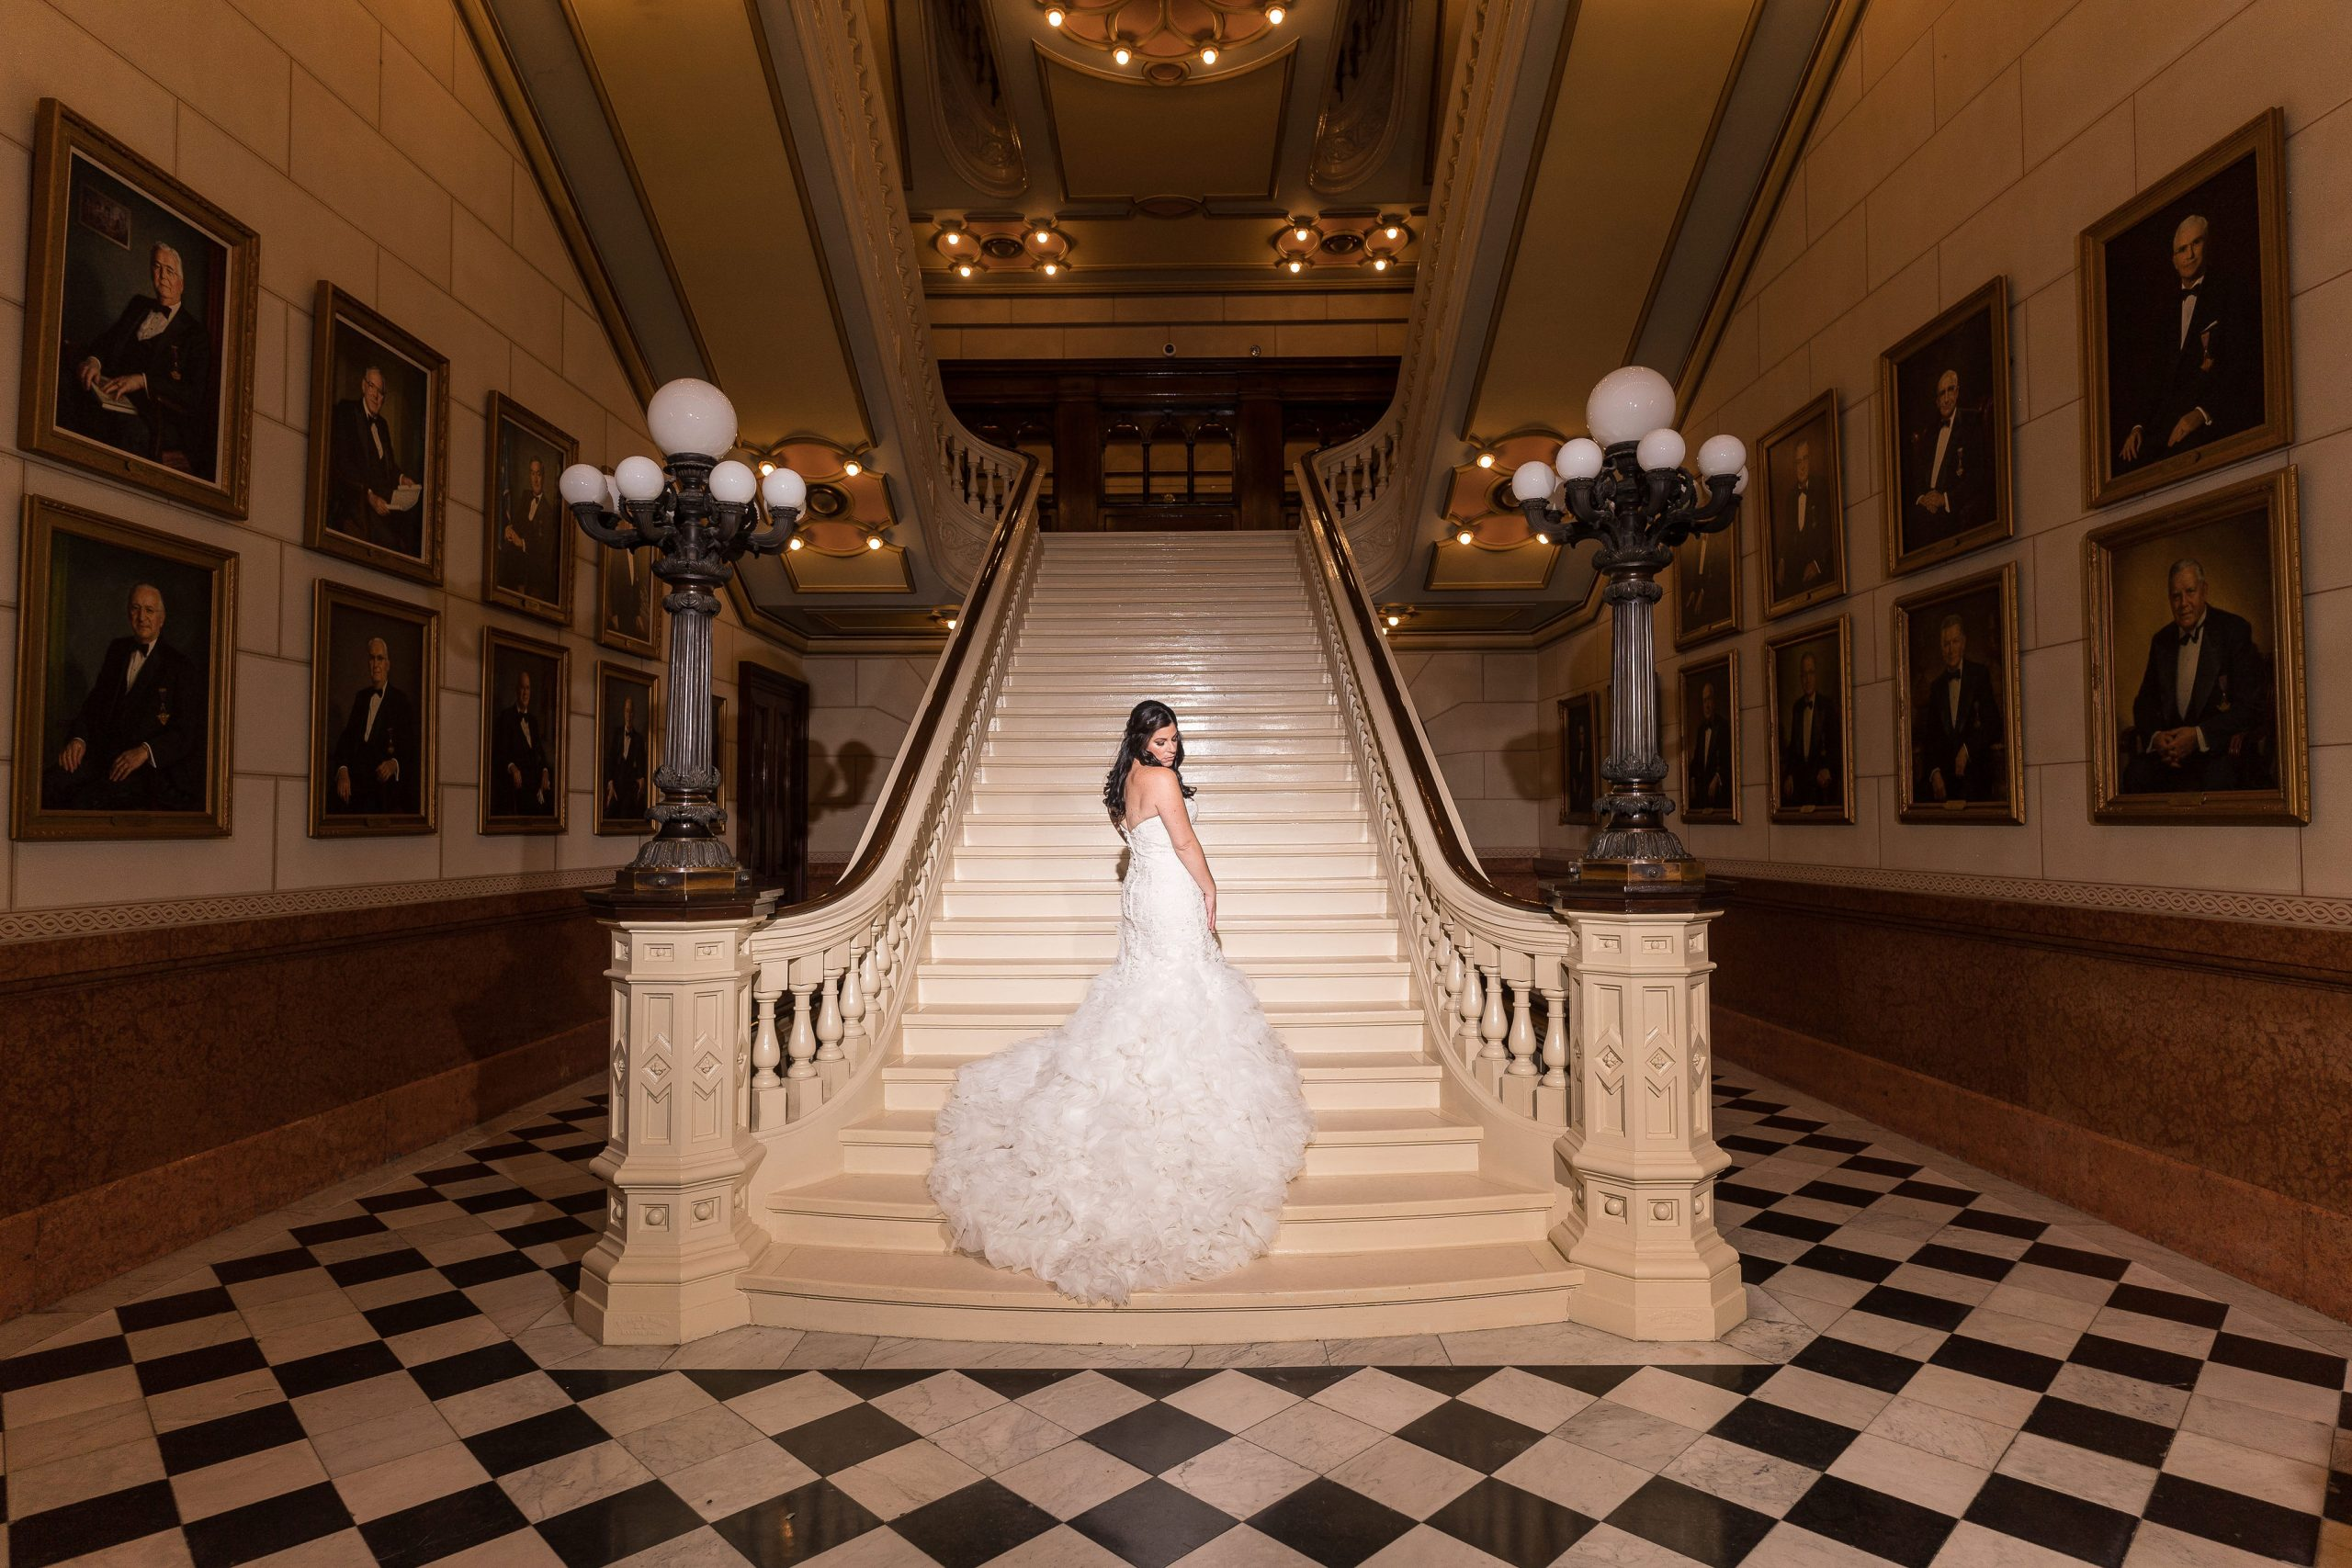 A young bride poses on the stairs at One North Broad a wedding venue in Philadelphia Pennsylvania